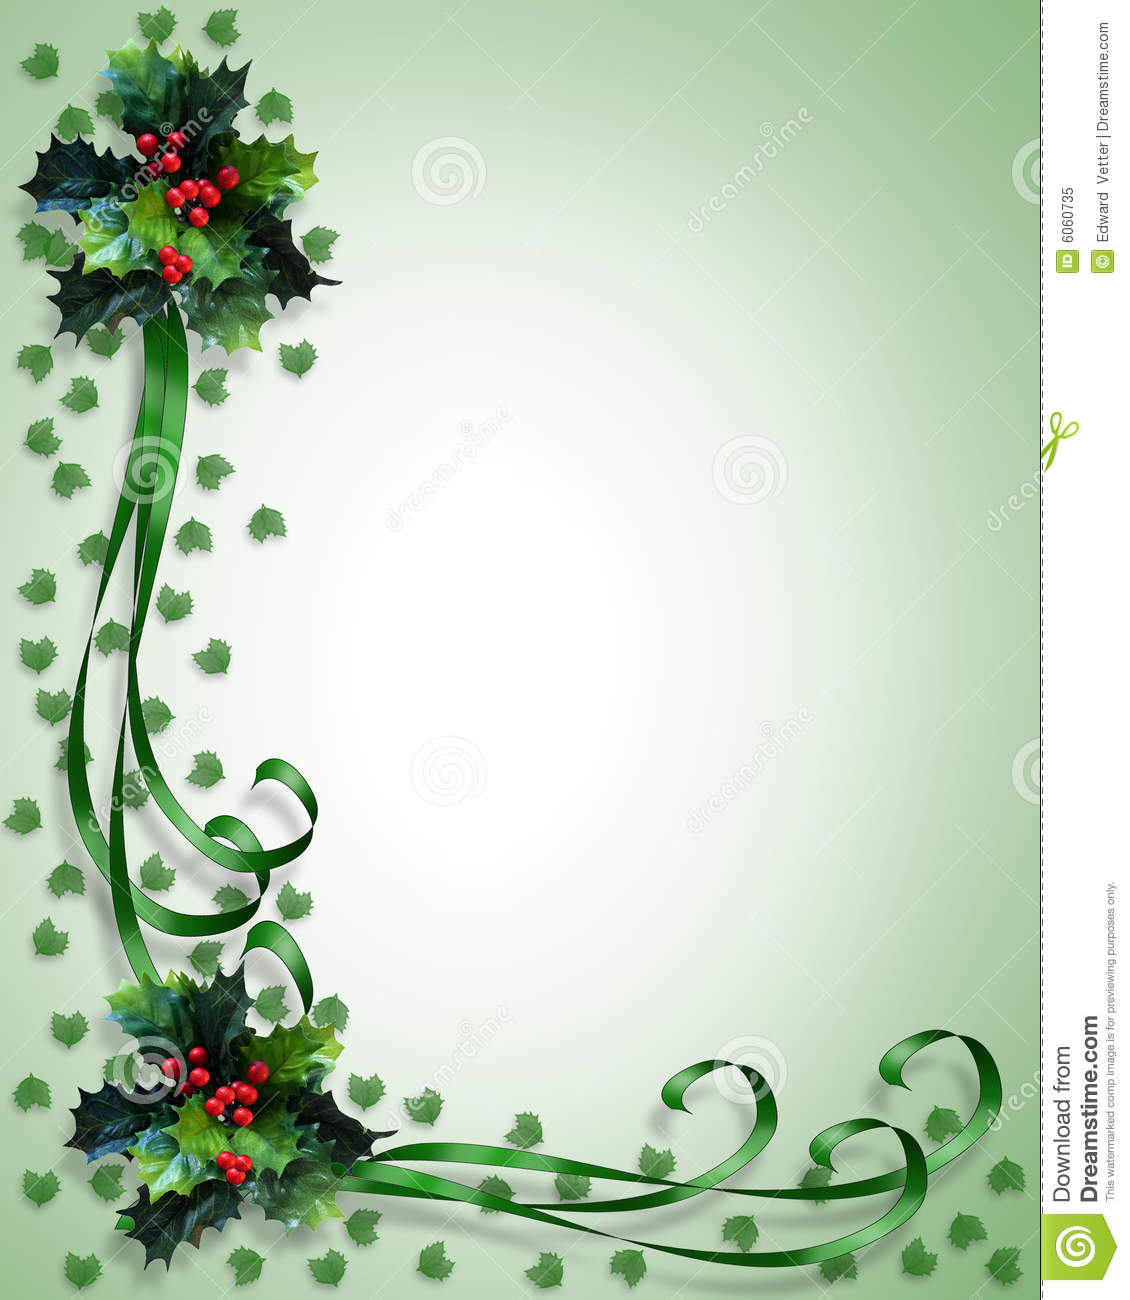 free clipart christmas invitation - photo #19